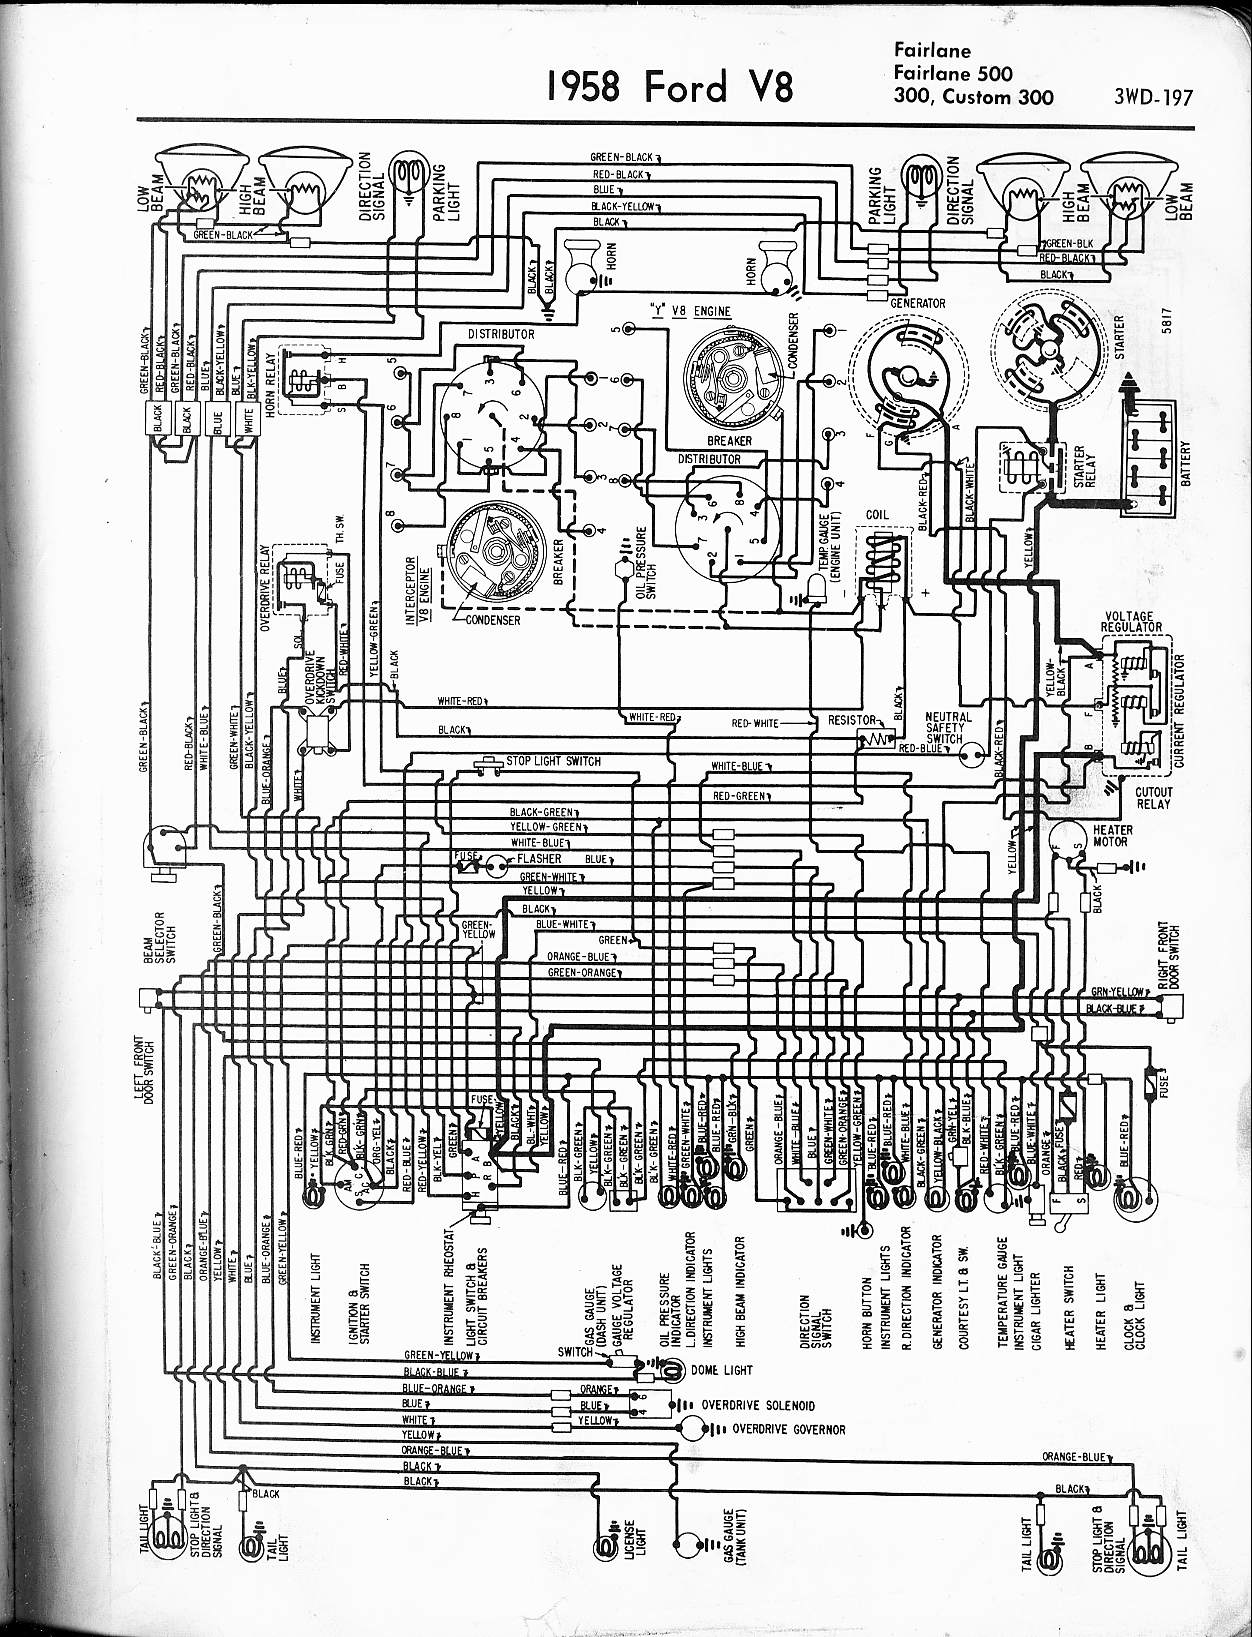 1968 Plymouth Fury Wiring Diagram Library 1975 Valiant Schematic 1956 Ford Fairlane Simple Galaxie Parts Catalog